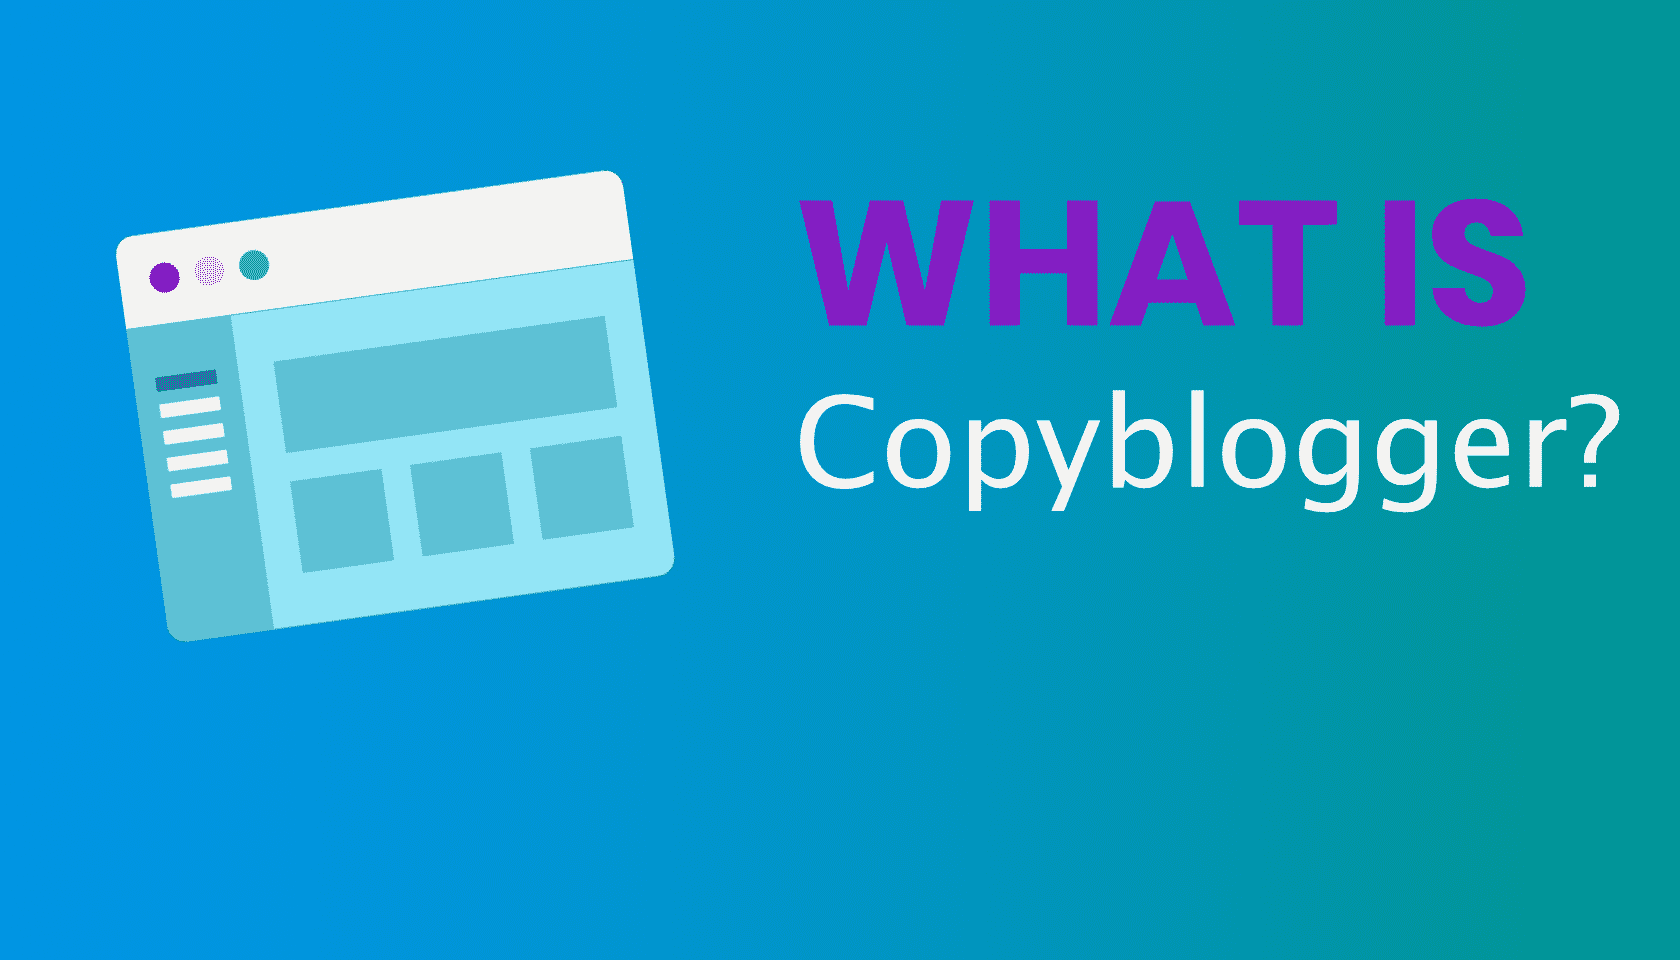 What is: Copyblogger